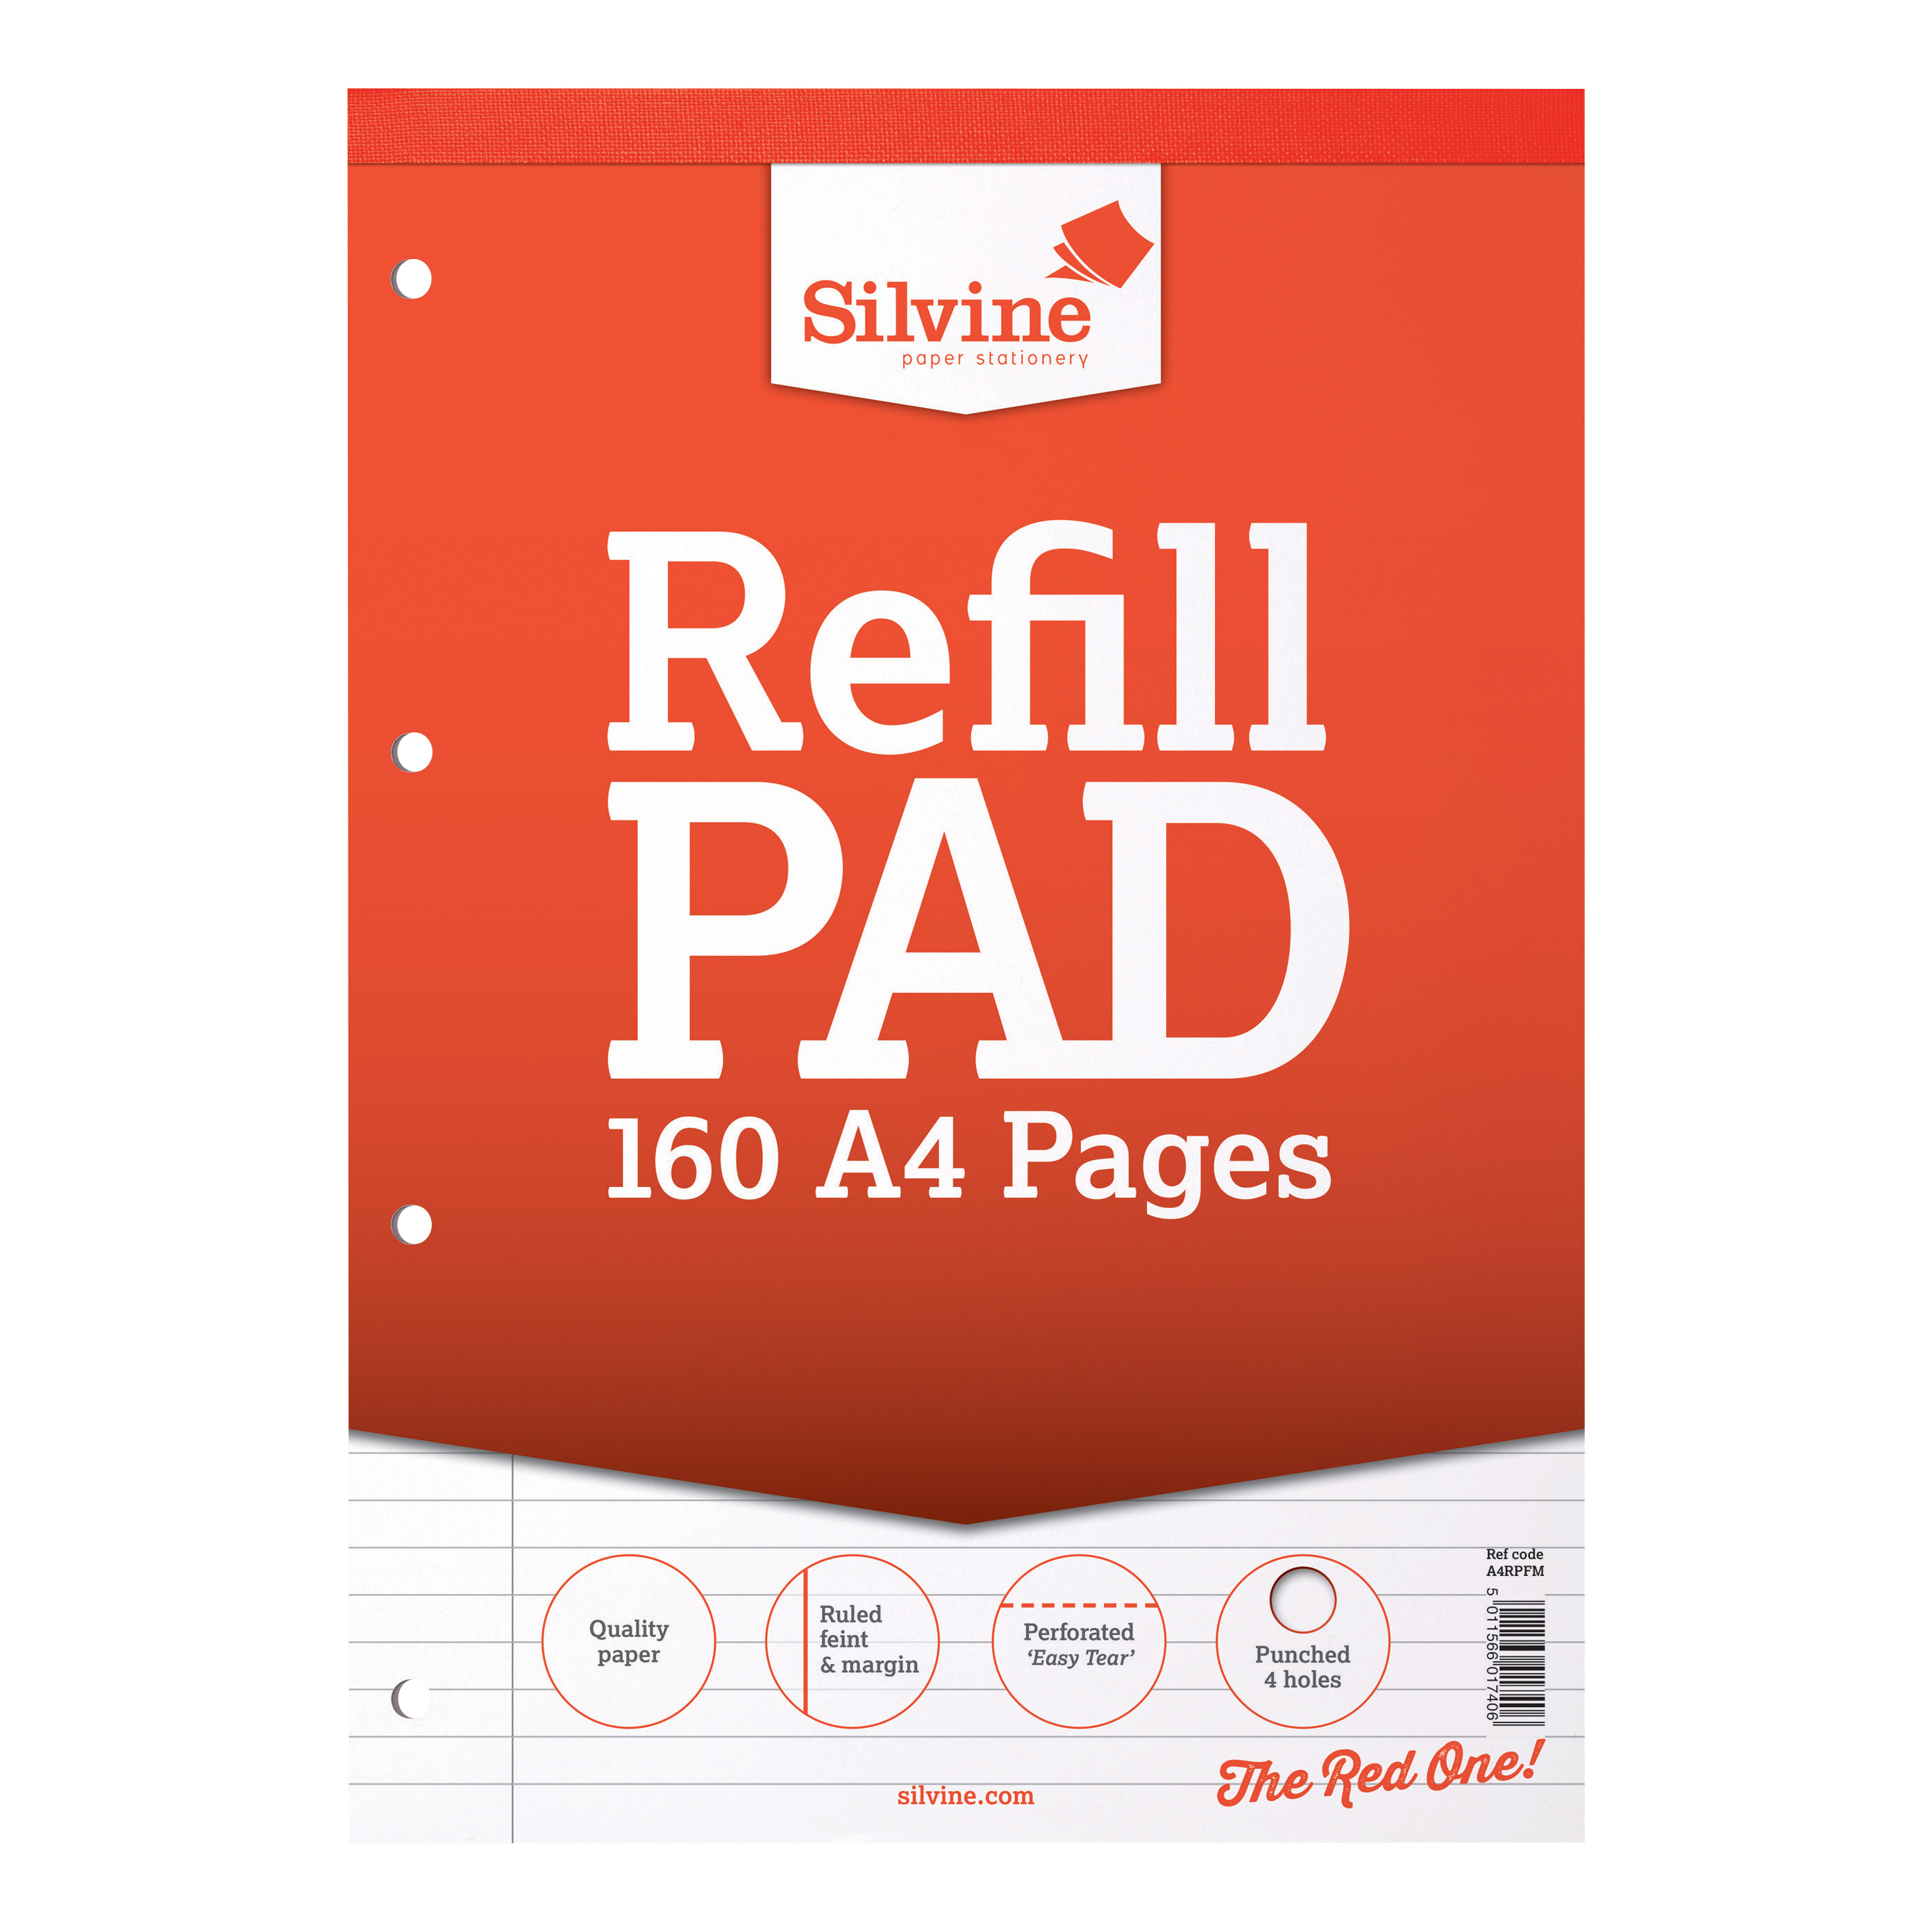 Silvine Refill Pad Headbound 75gsm Ruled Margin Perf Punched 4 Holes 160pp A4 Red Ref A4RPFM [Pack 6]